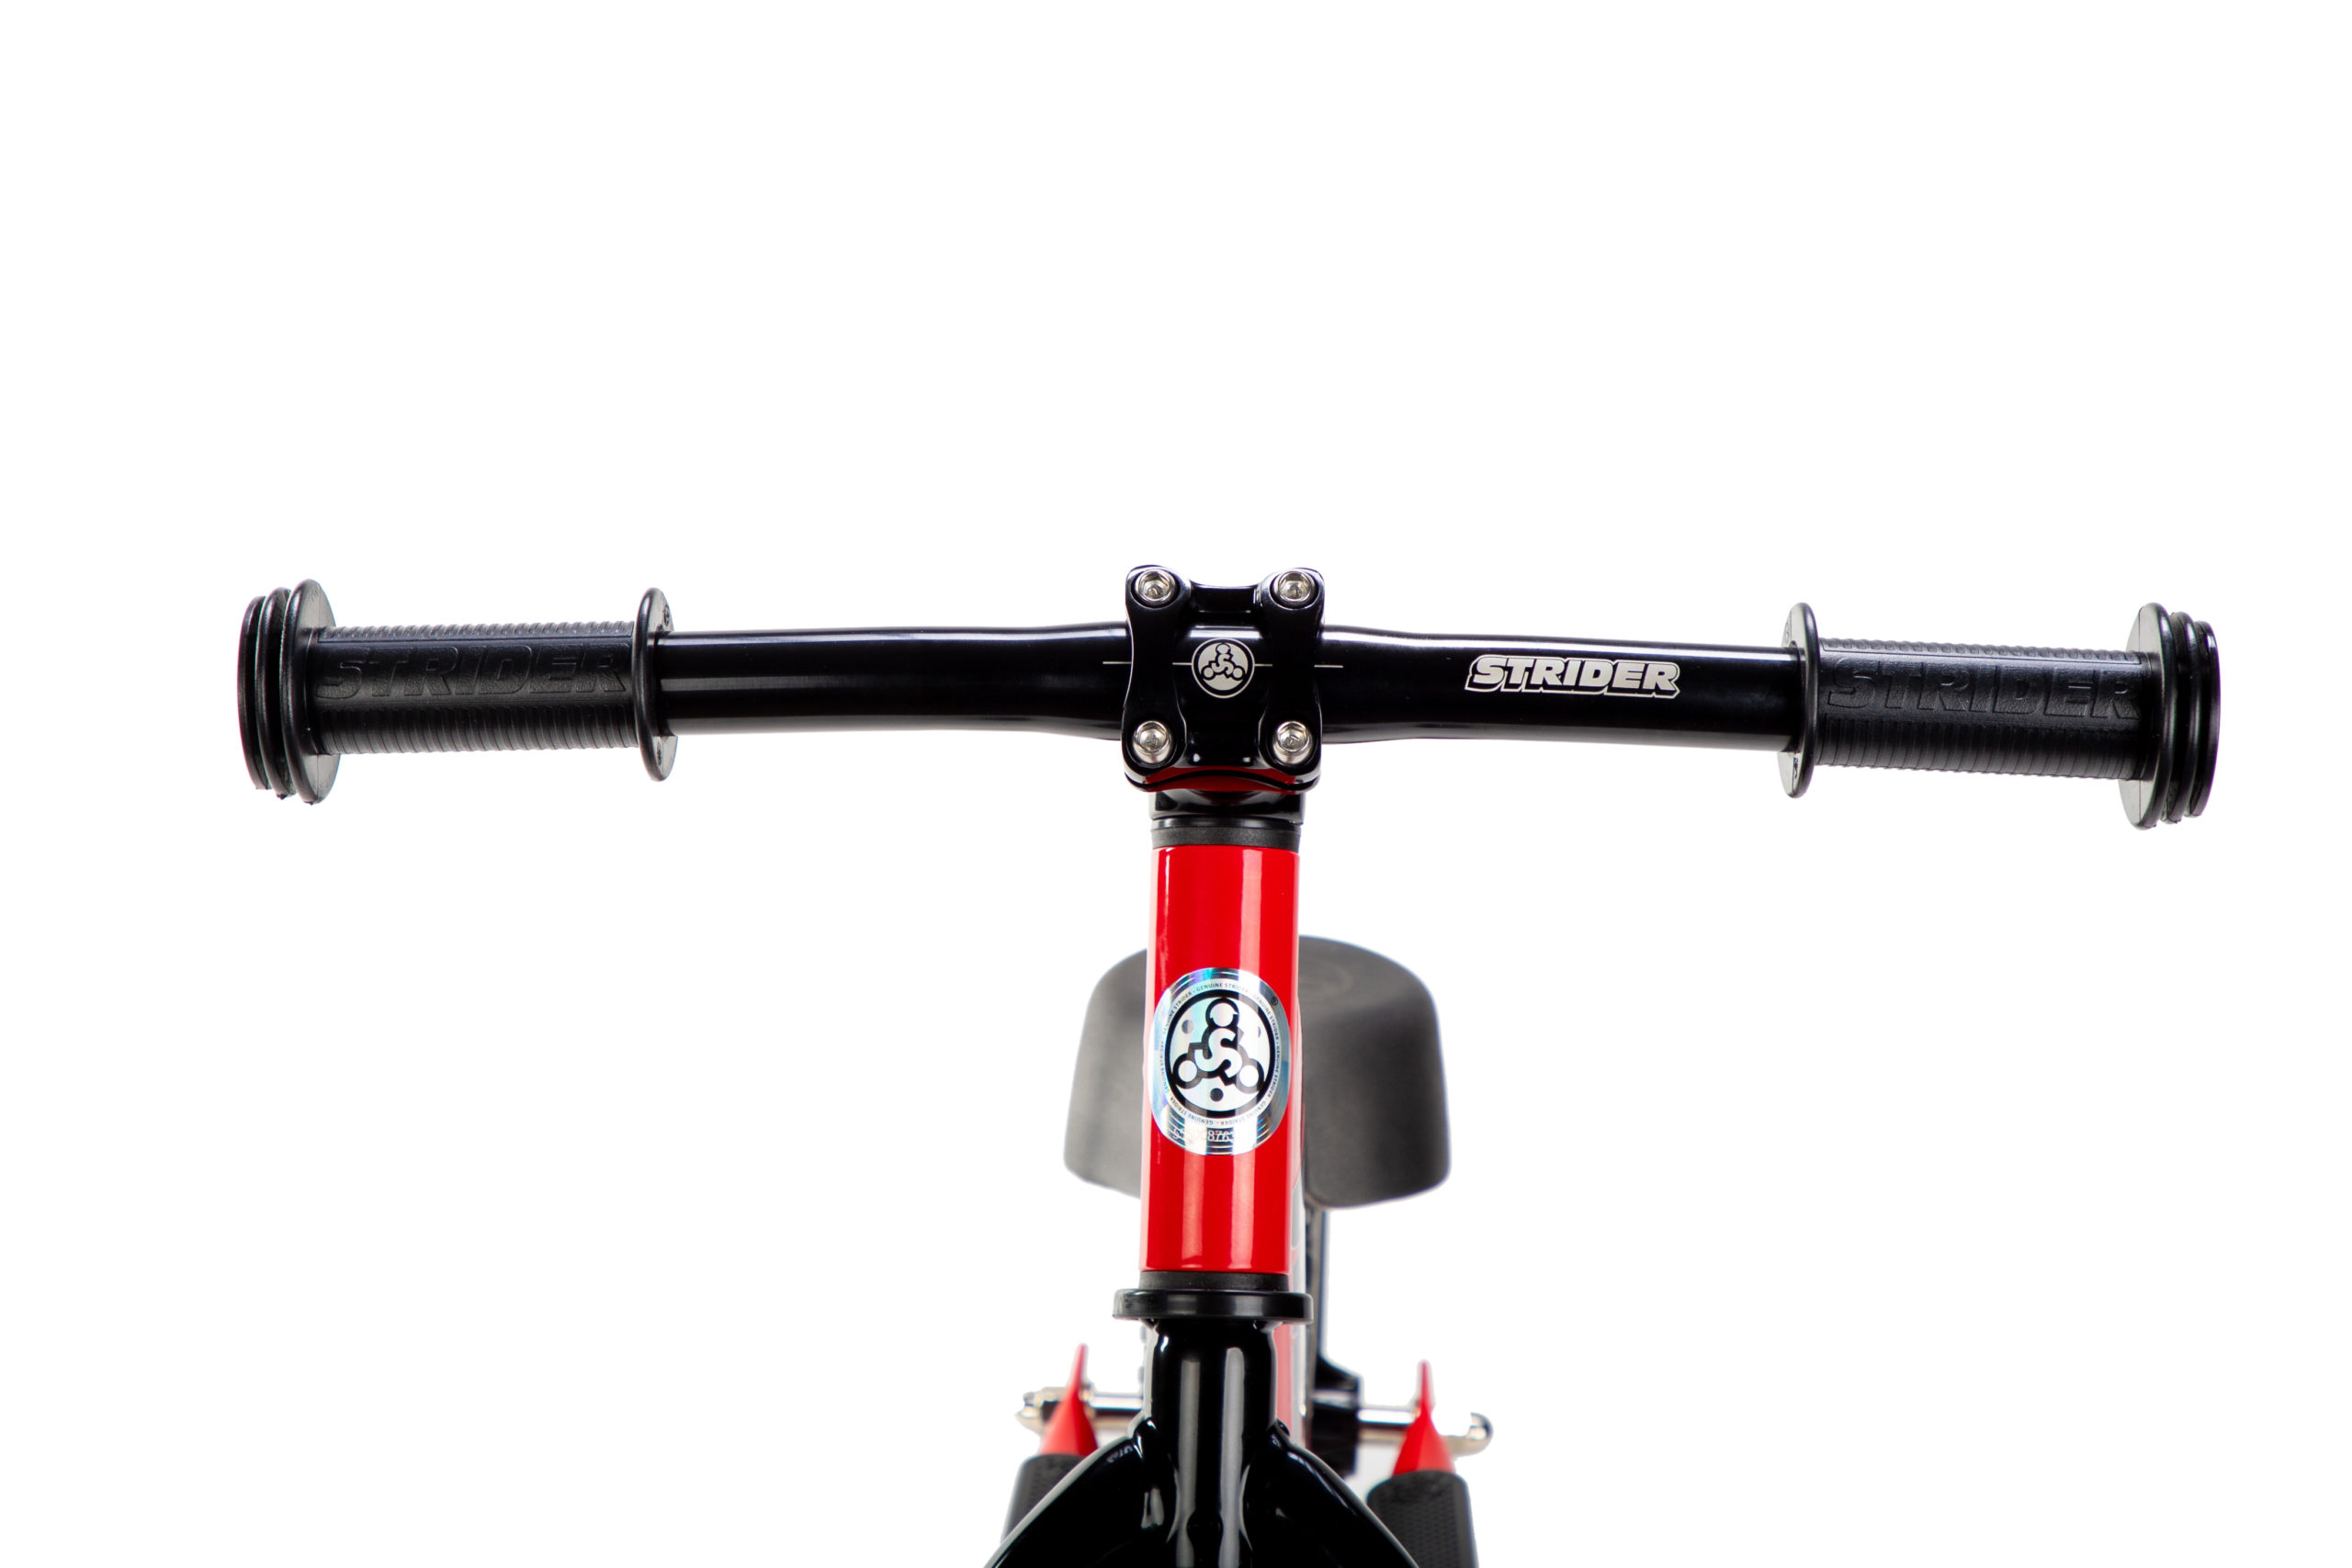 Studio image of Strider Aluminum Flat Handlebar with Grips on red 12 Sport - close-up front view